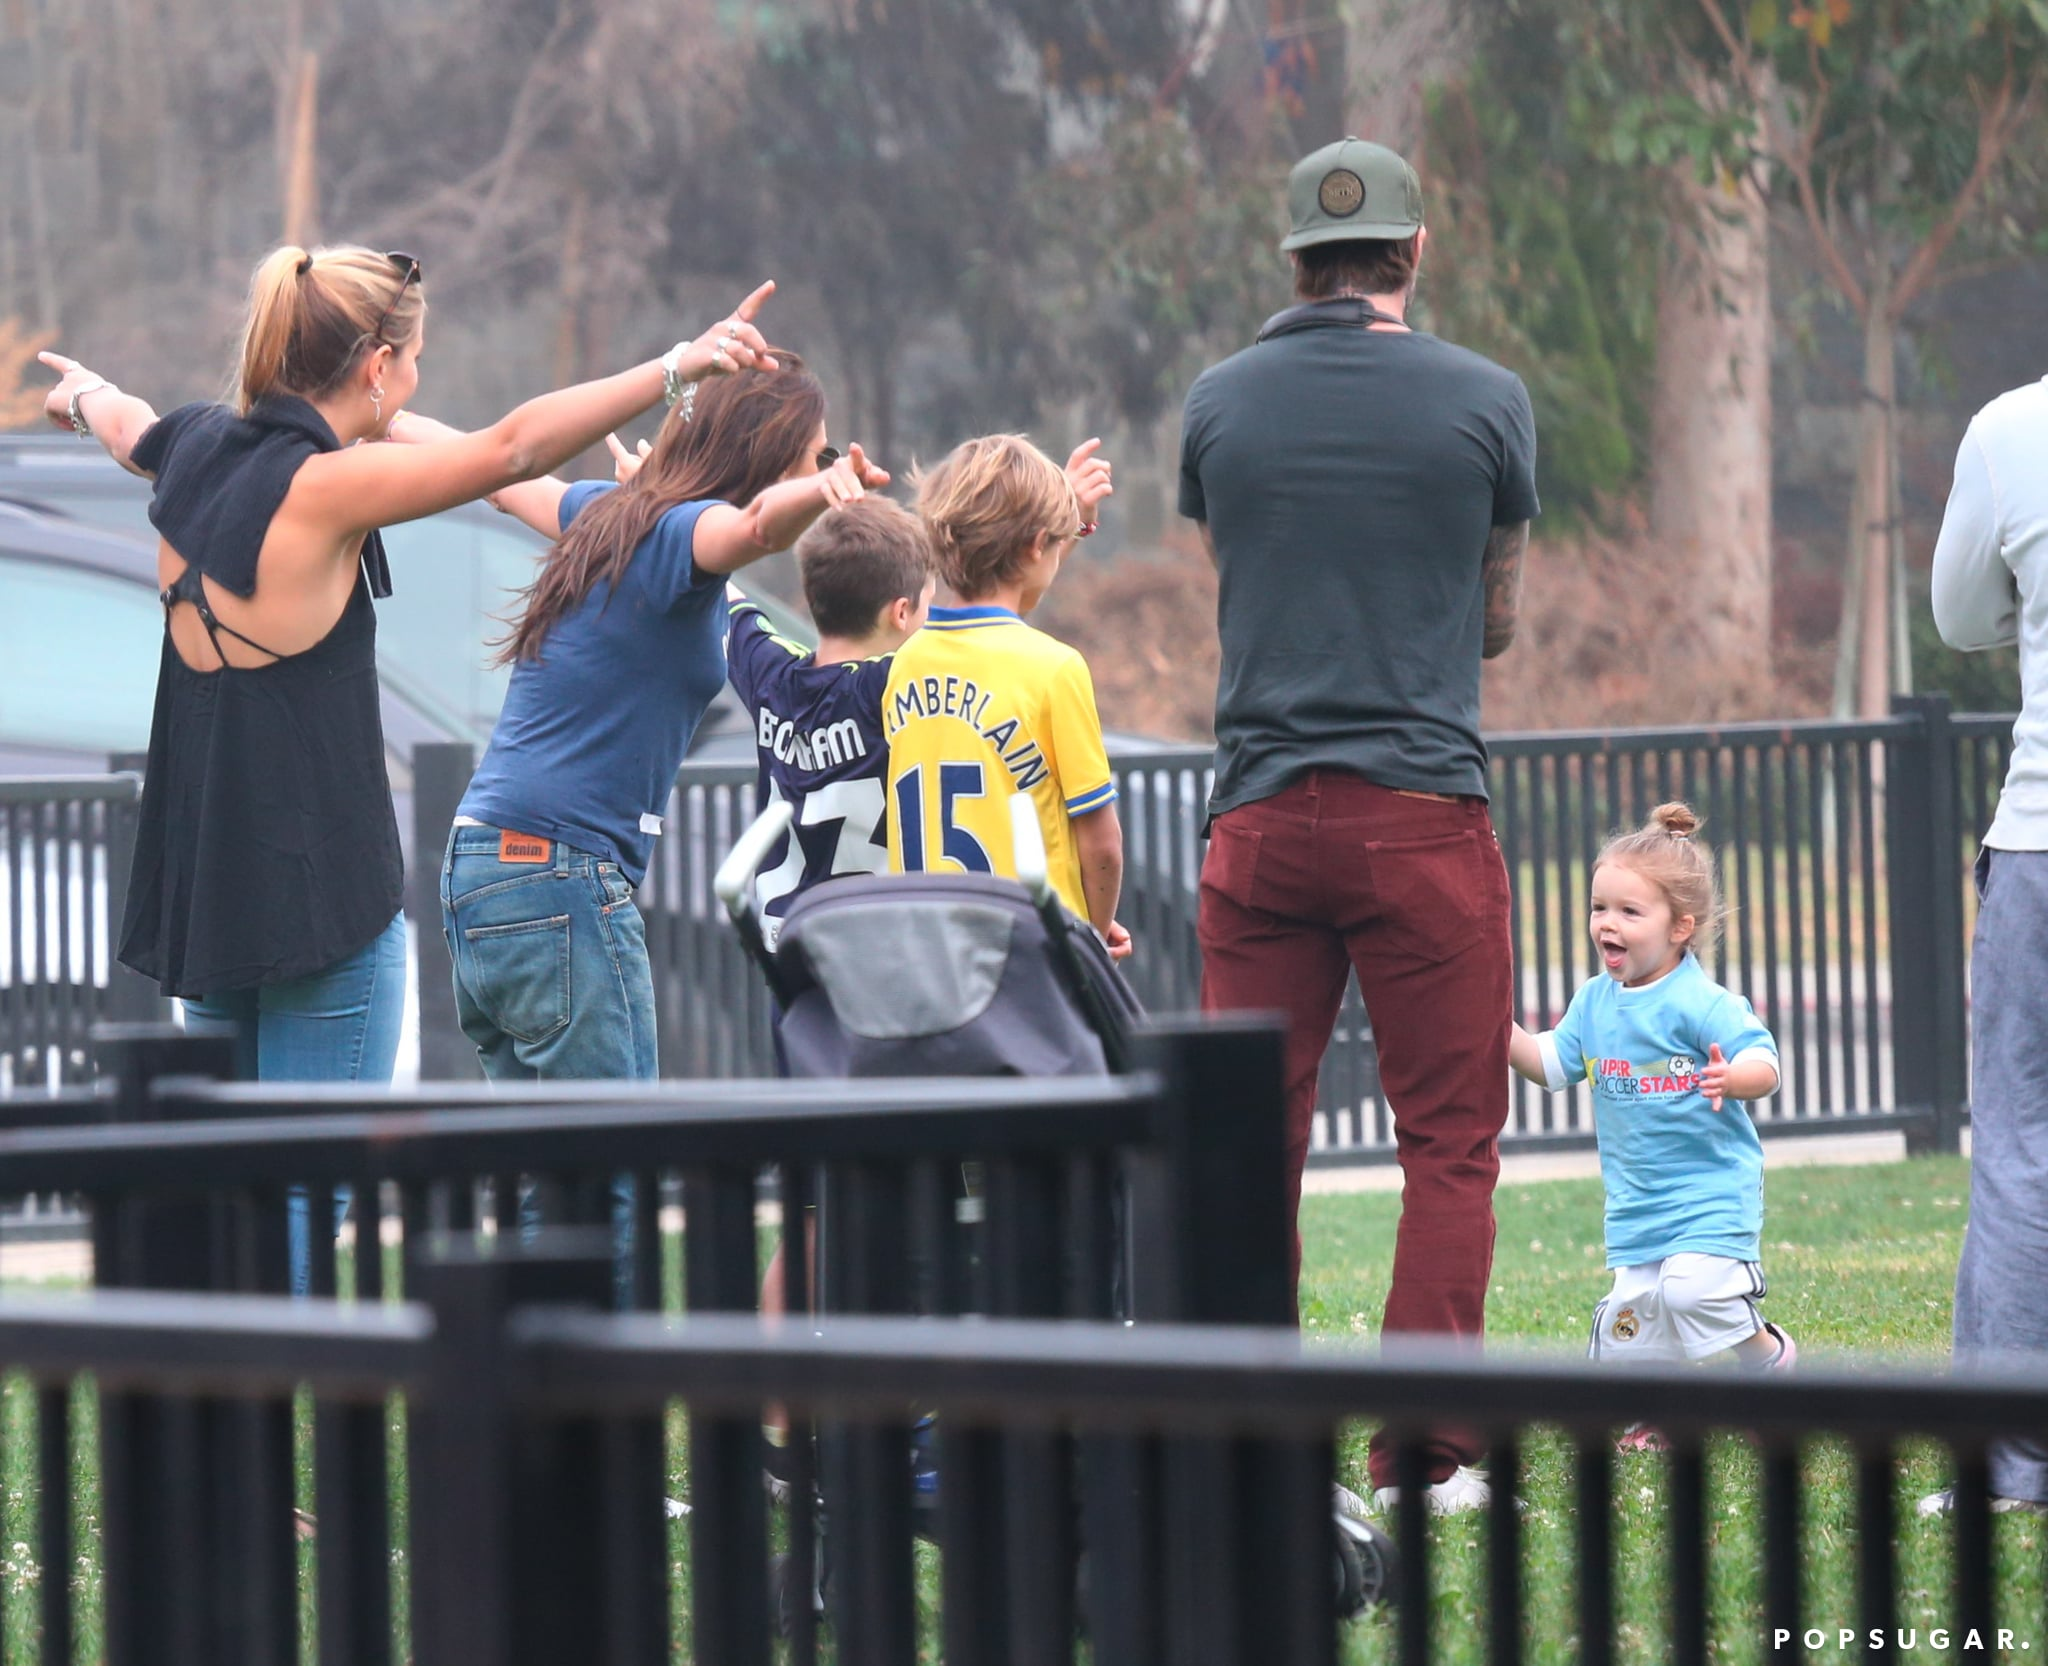 The Beckhams took to the soccer field to watch Harper play.